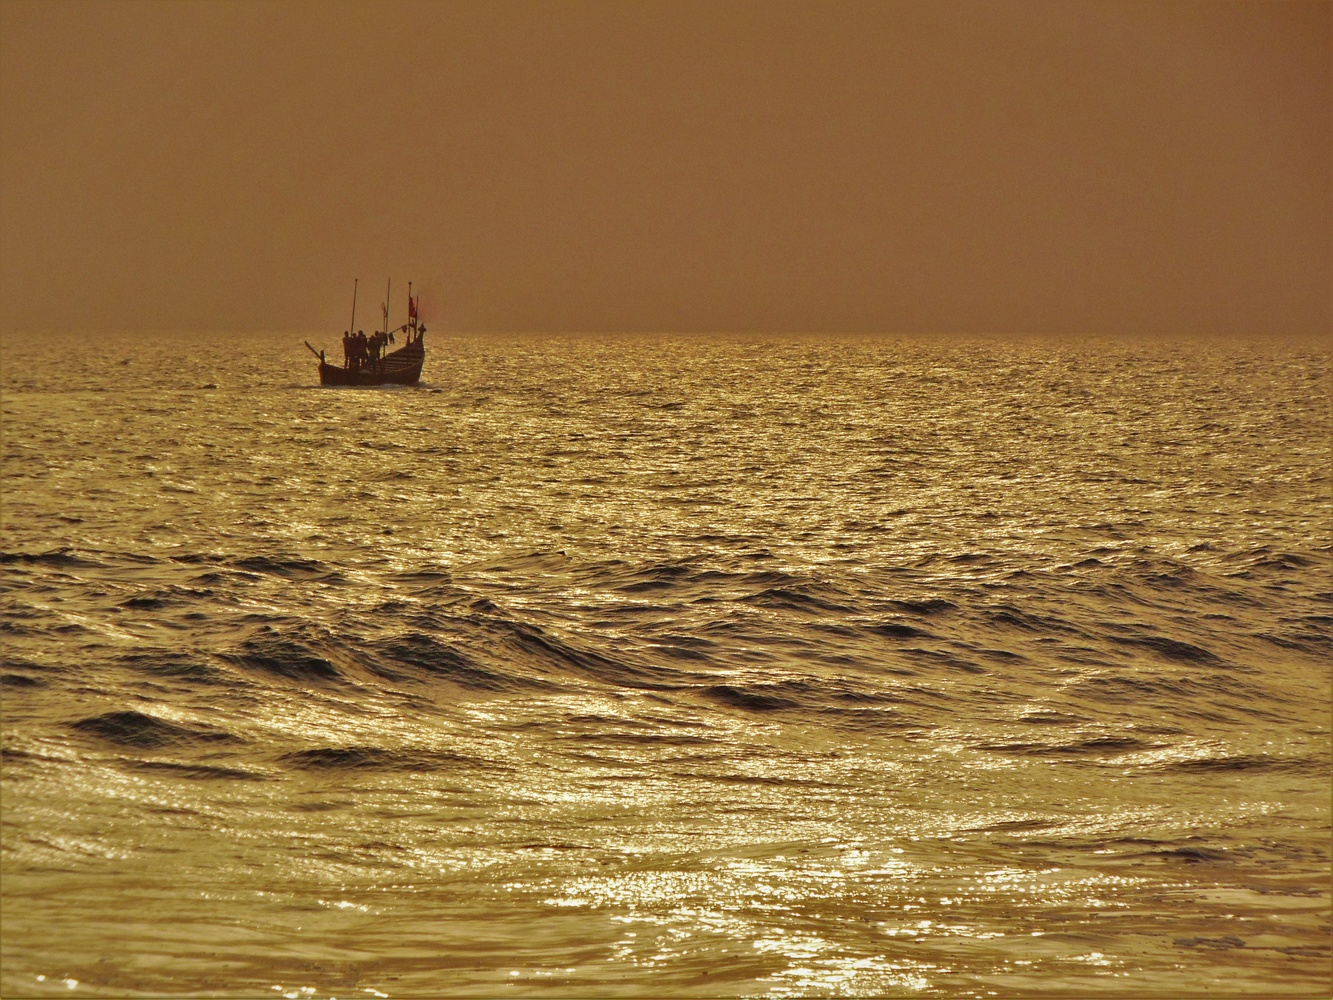 Journey through the Golden Sea of Time... by Hasnat Karim